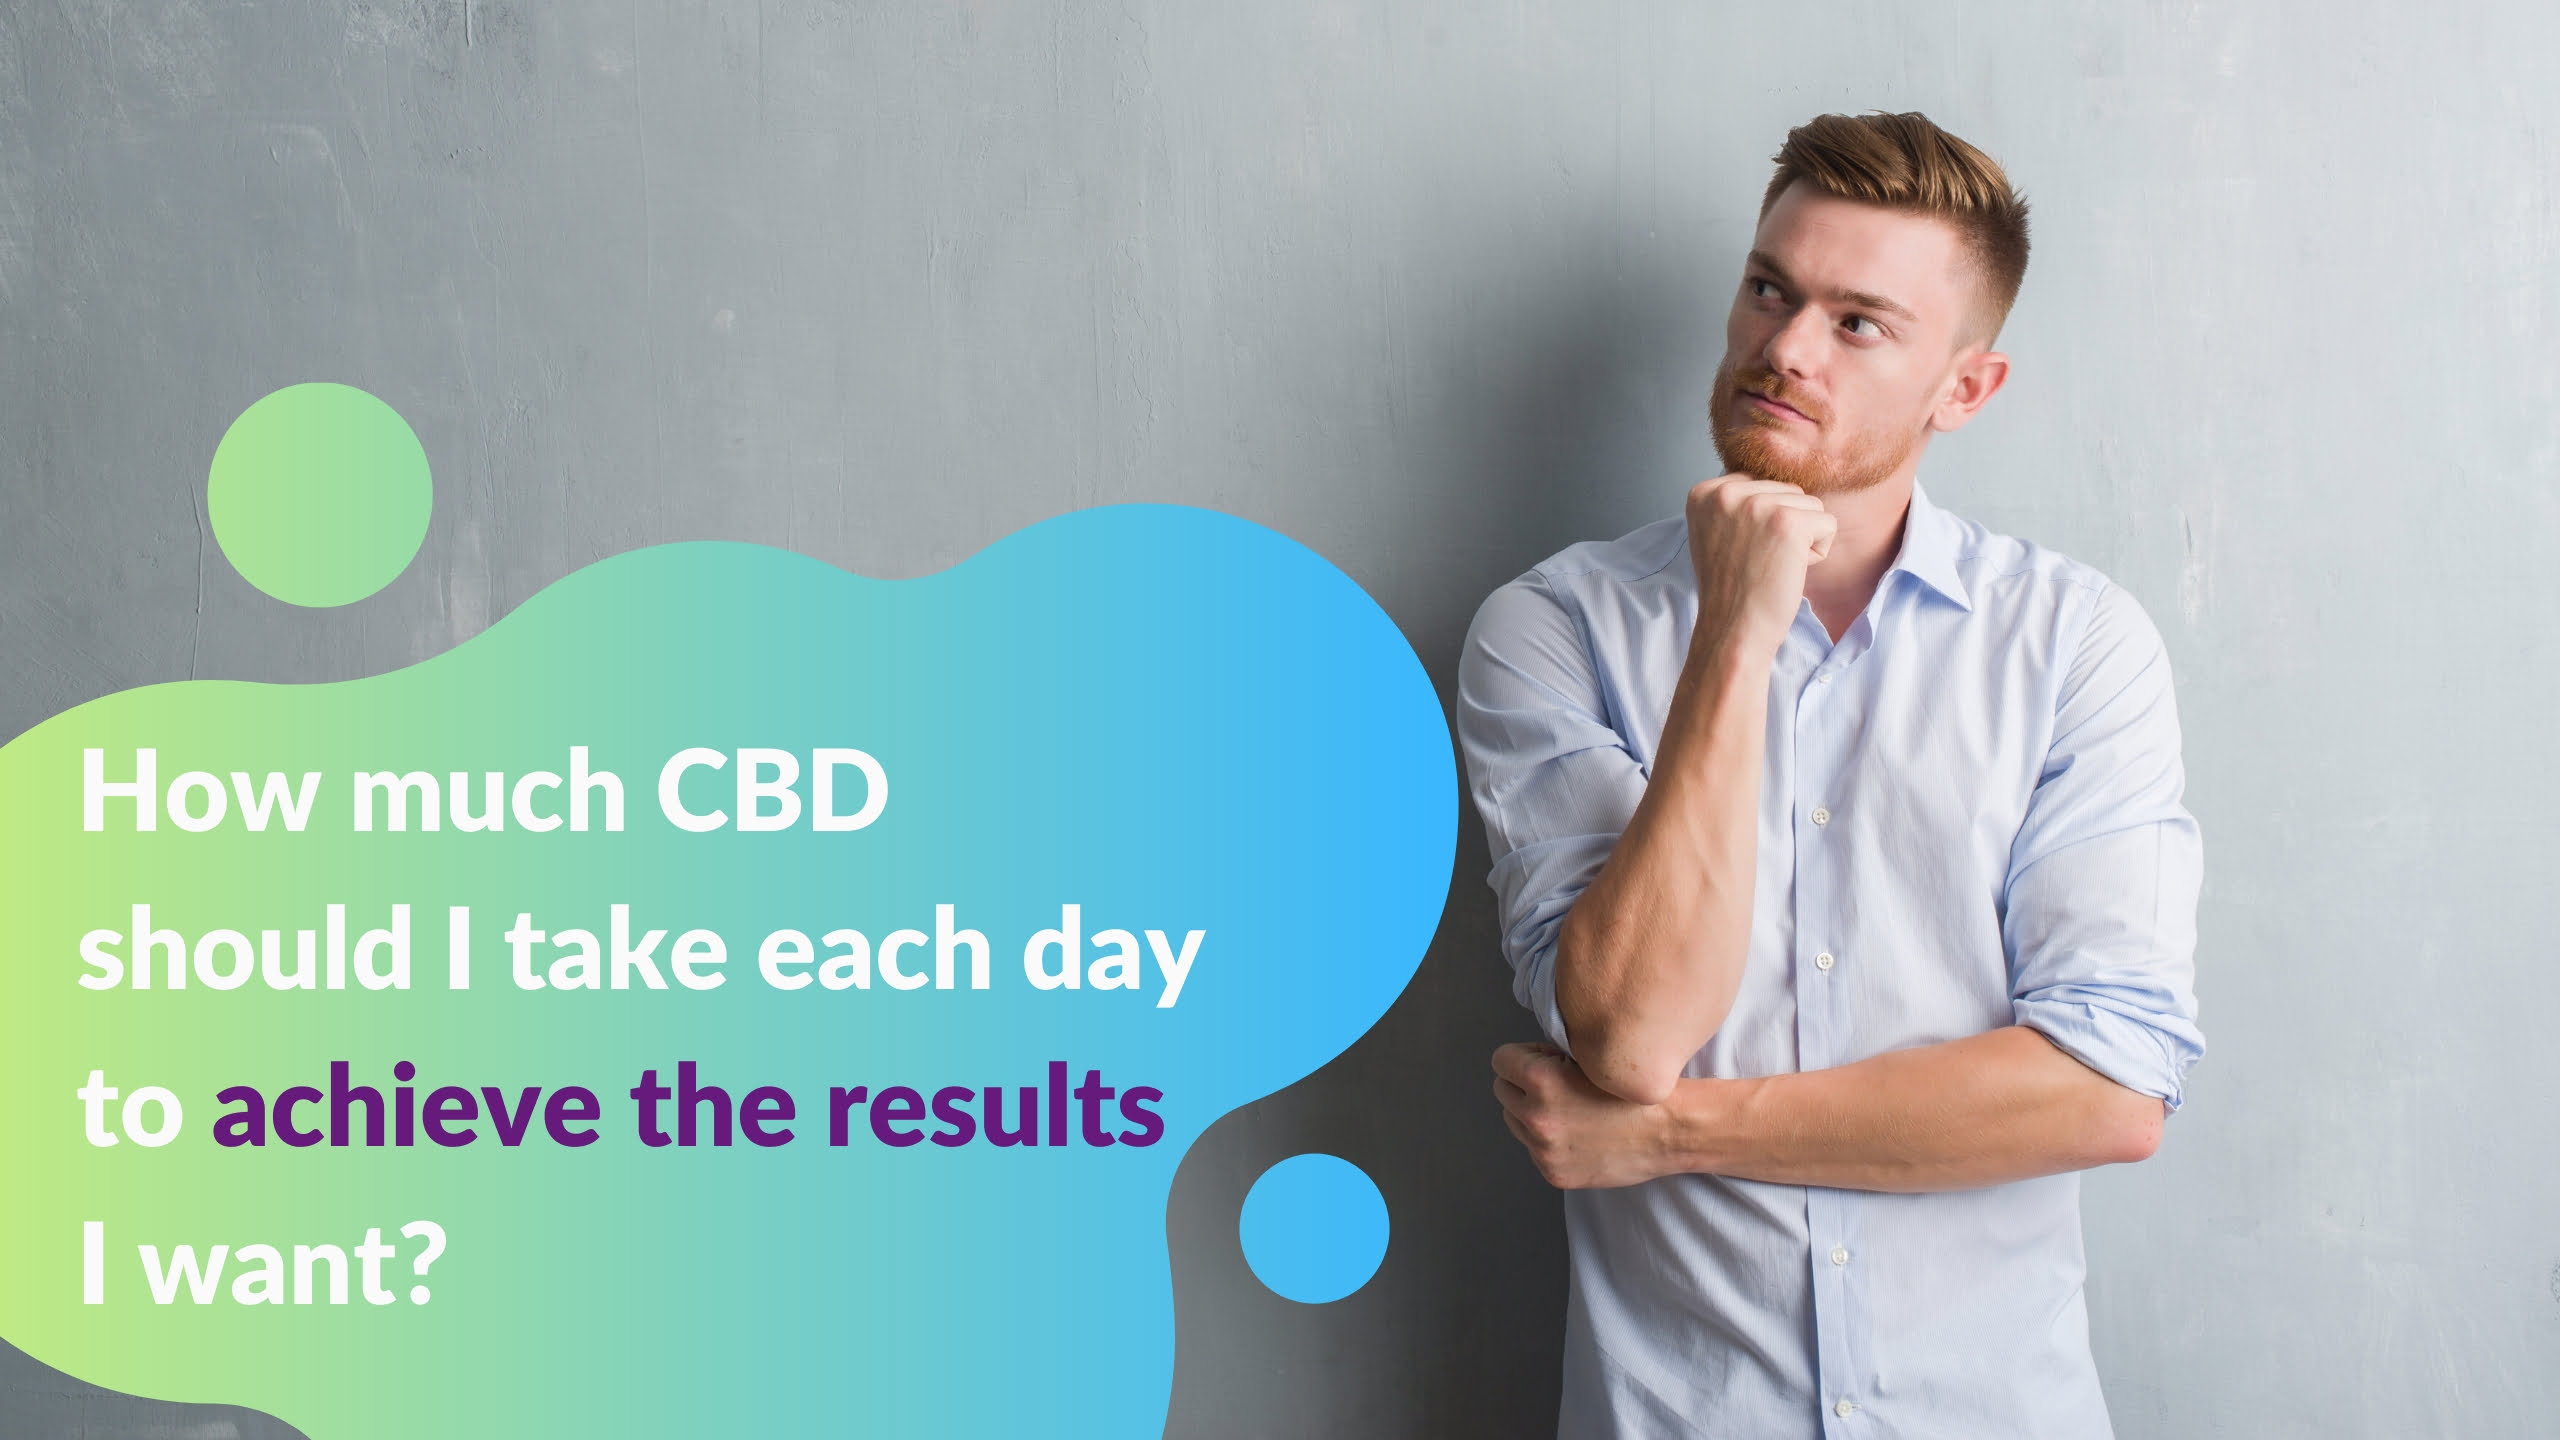 How much CBD should I take each day to achieve the results I want?